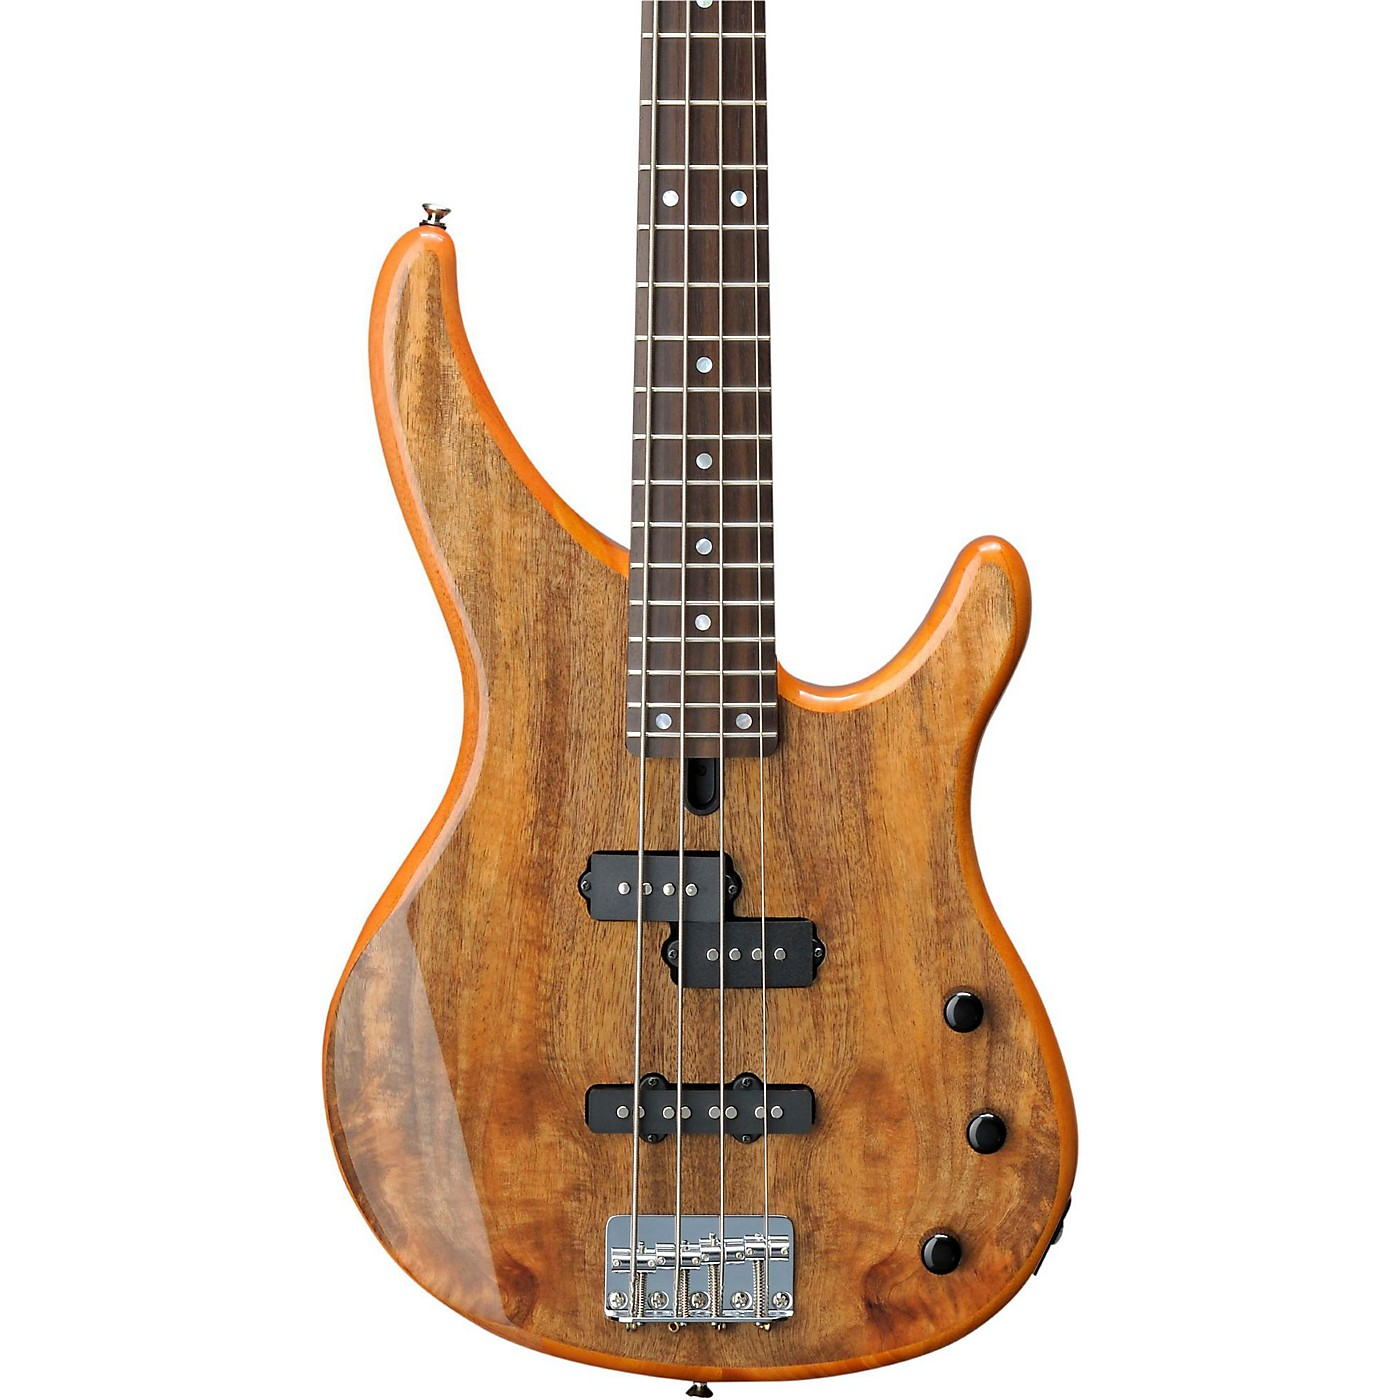 Yamaha TRBX174EW Mango Wood 4-String Electric Bass Guitar thumbnail